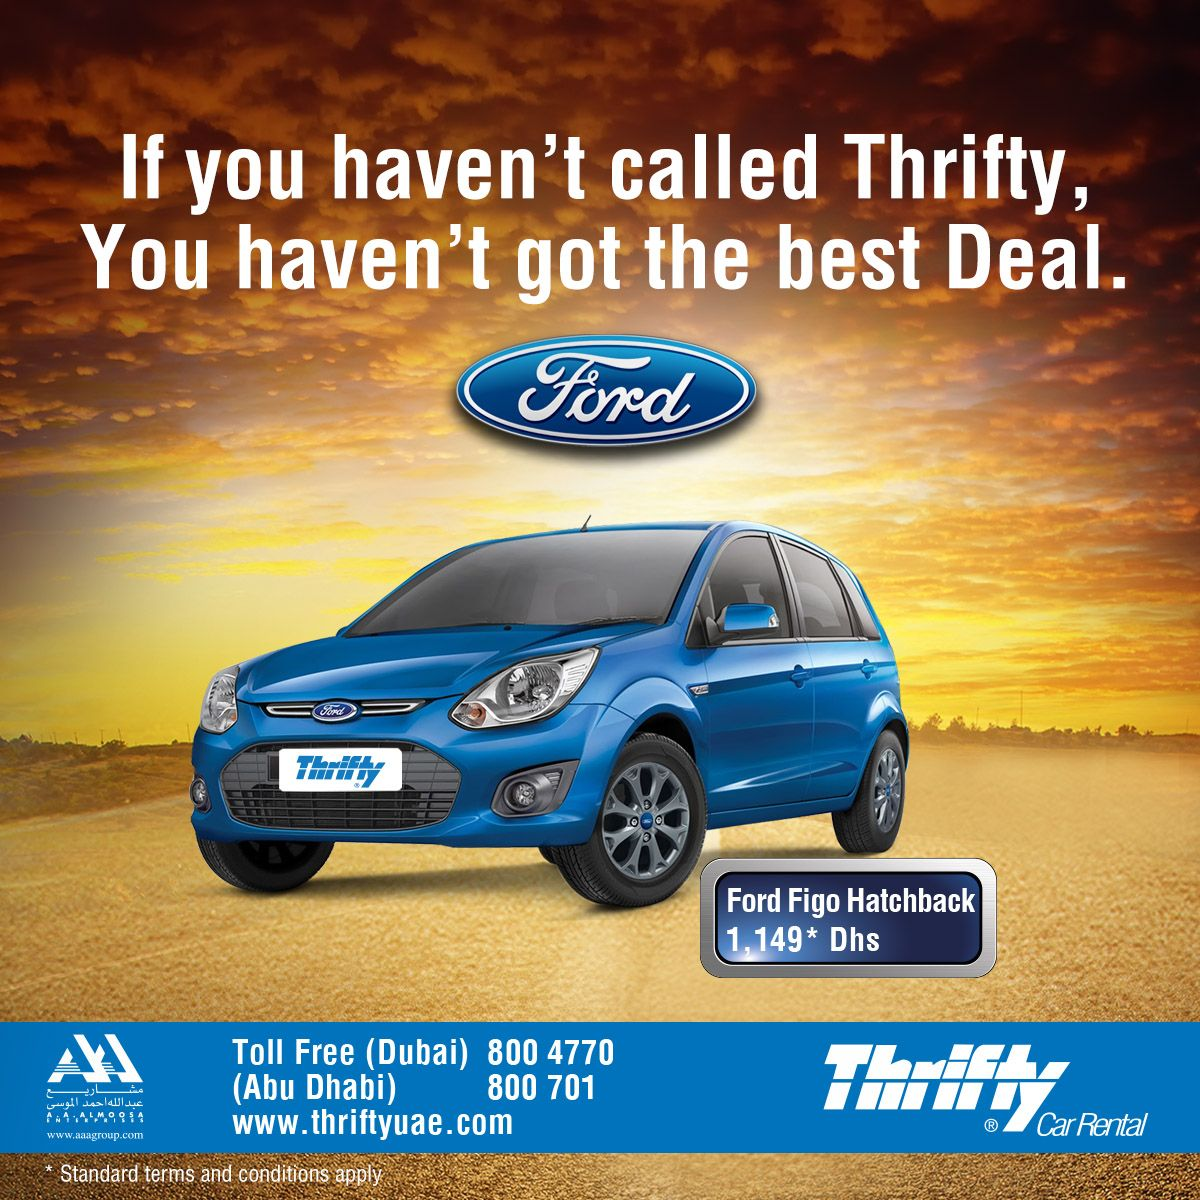 Introducing The Fantastic4 Now At Thriftyuae Ford